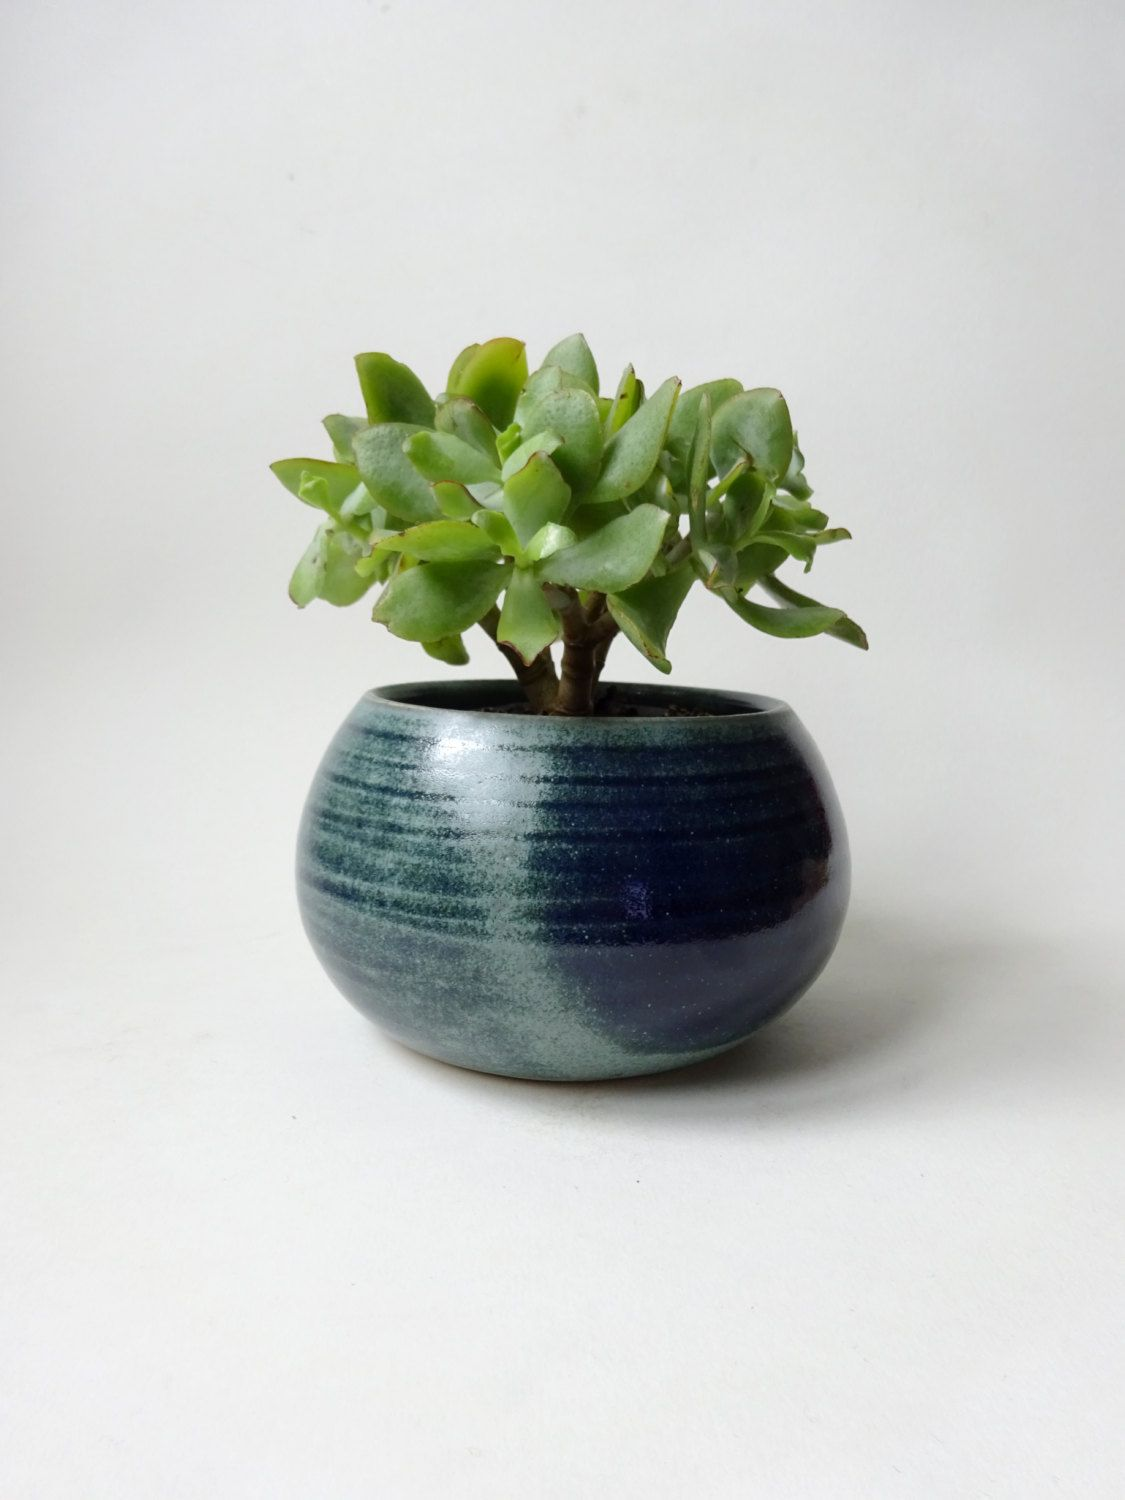 Blue Green Vase Pot For Plants Handmade Ceramic Succulent And Small By Viceramics On Etsy